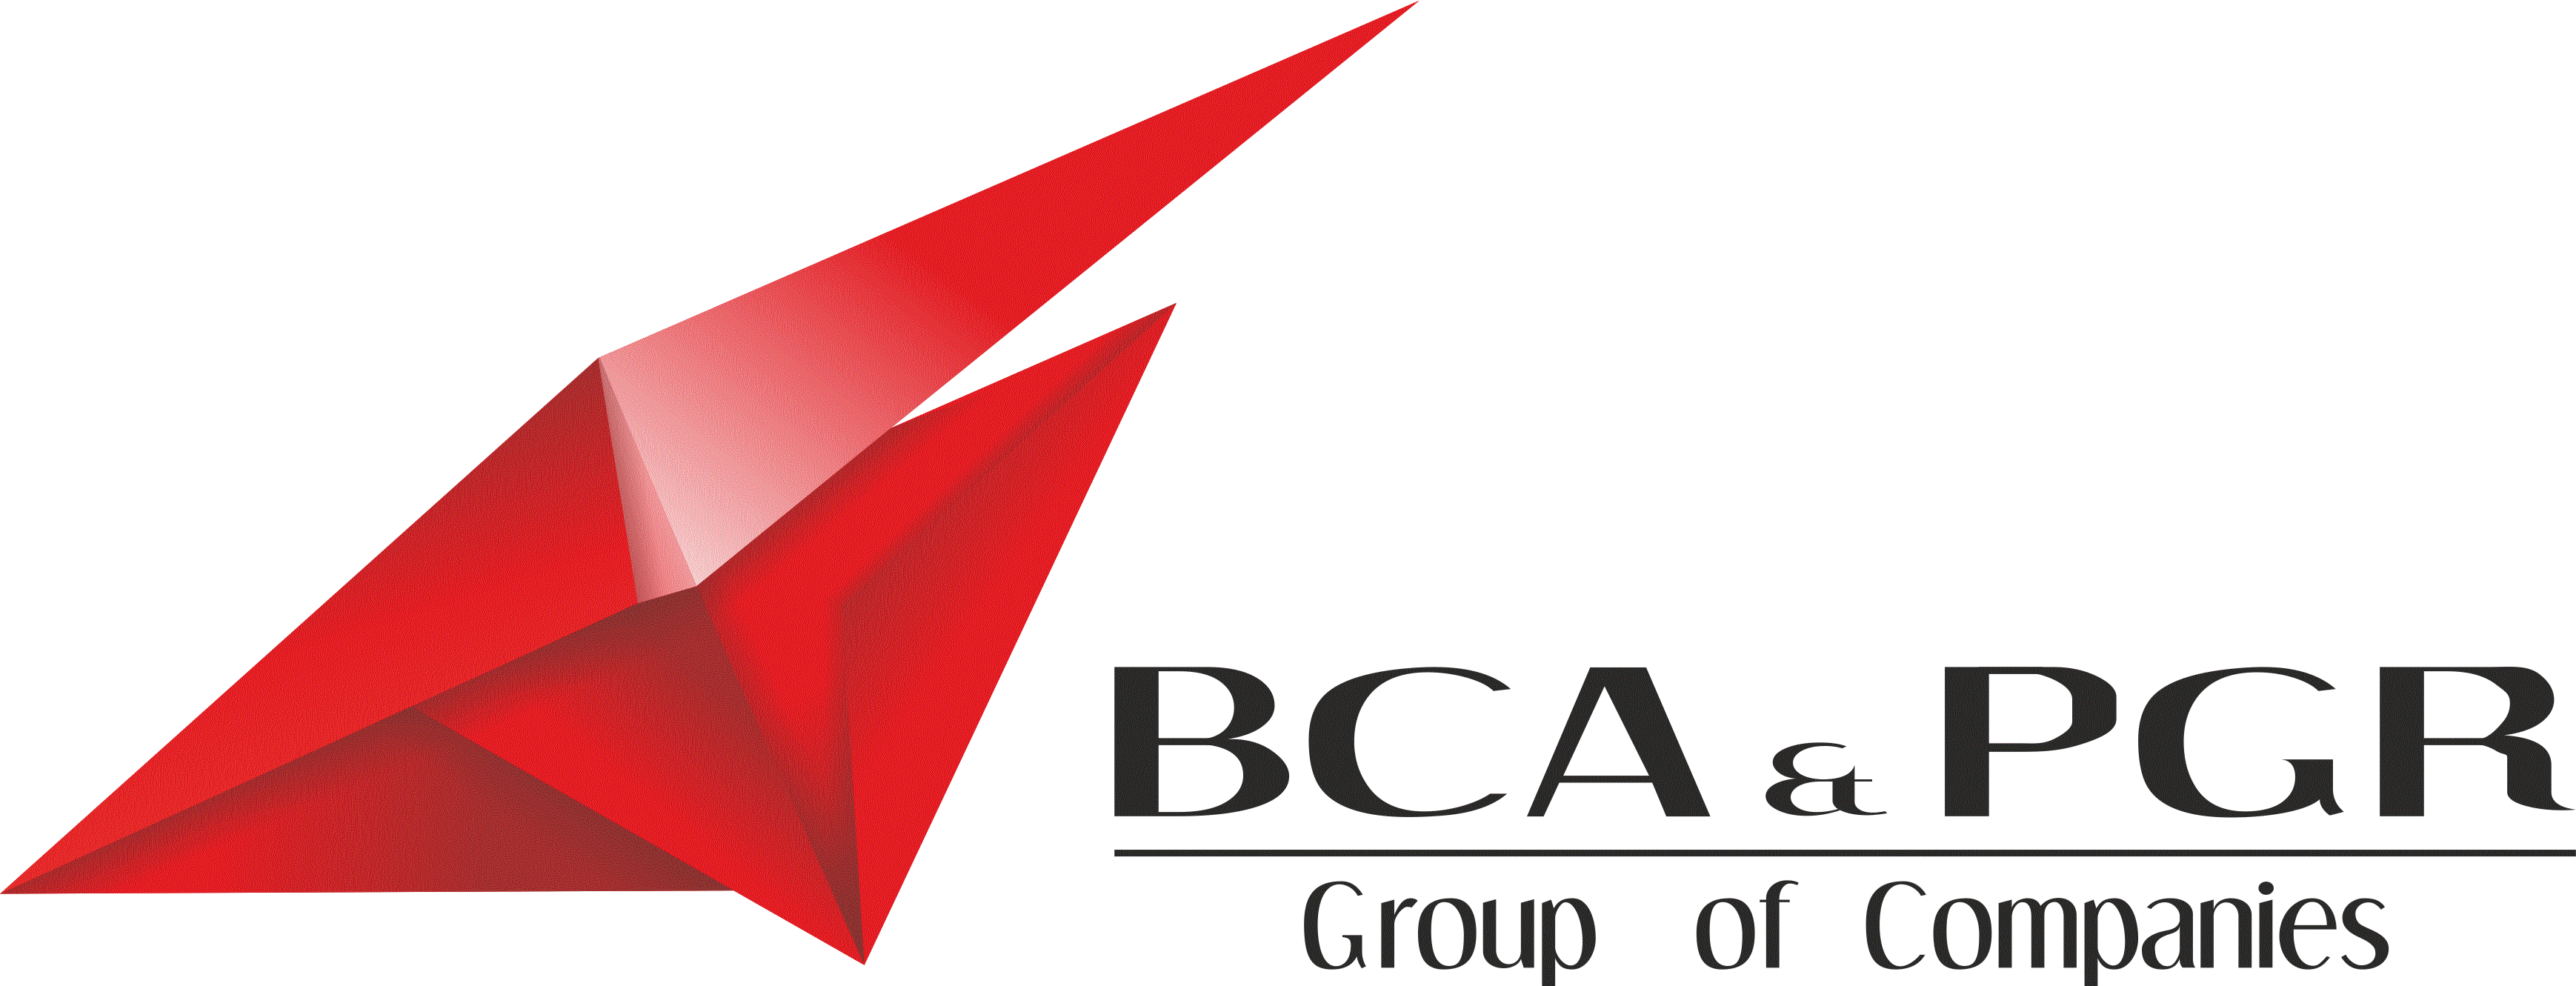 «BCA & PGR Group Of Companies»